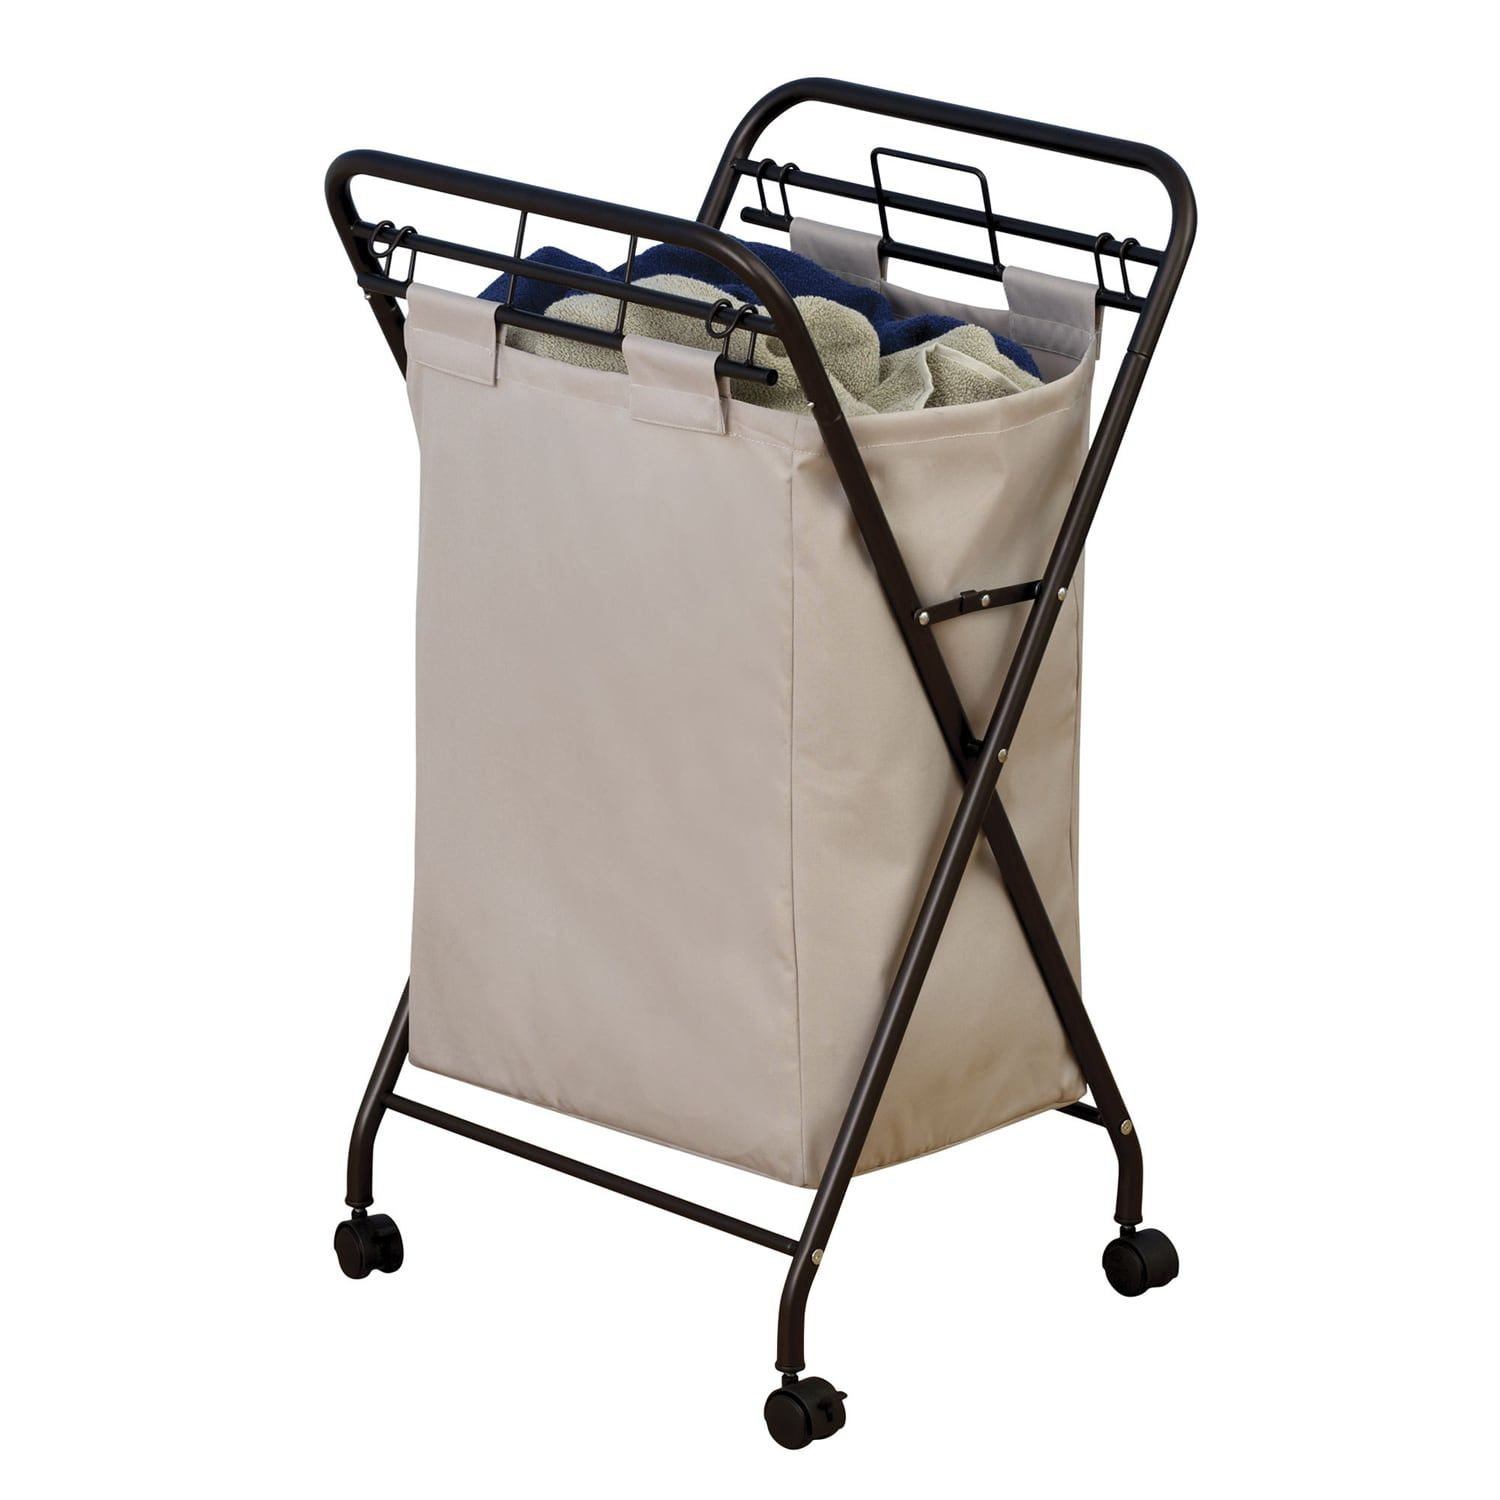 Household Essentials Rolling Laundry Hamper Essentials Household Rolling Hamper Laundry Hamper Hamper Canvas Laundry Bag